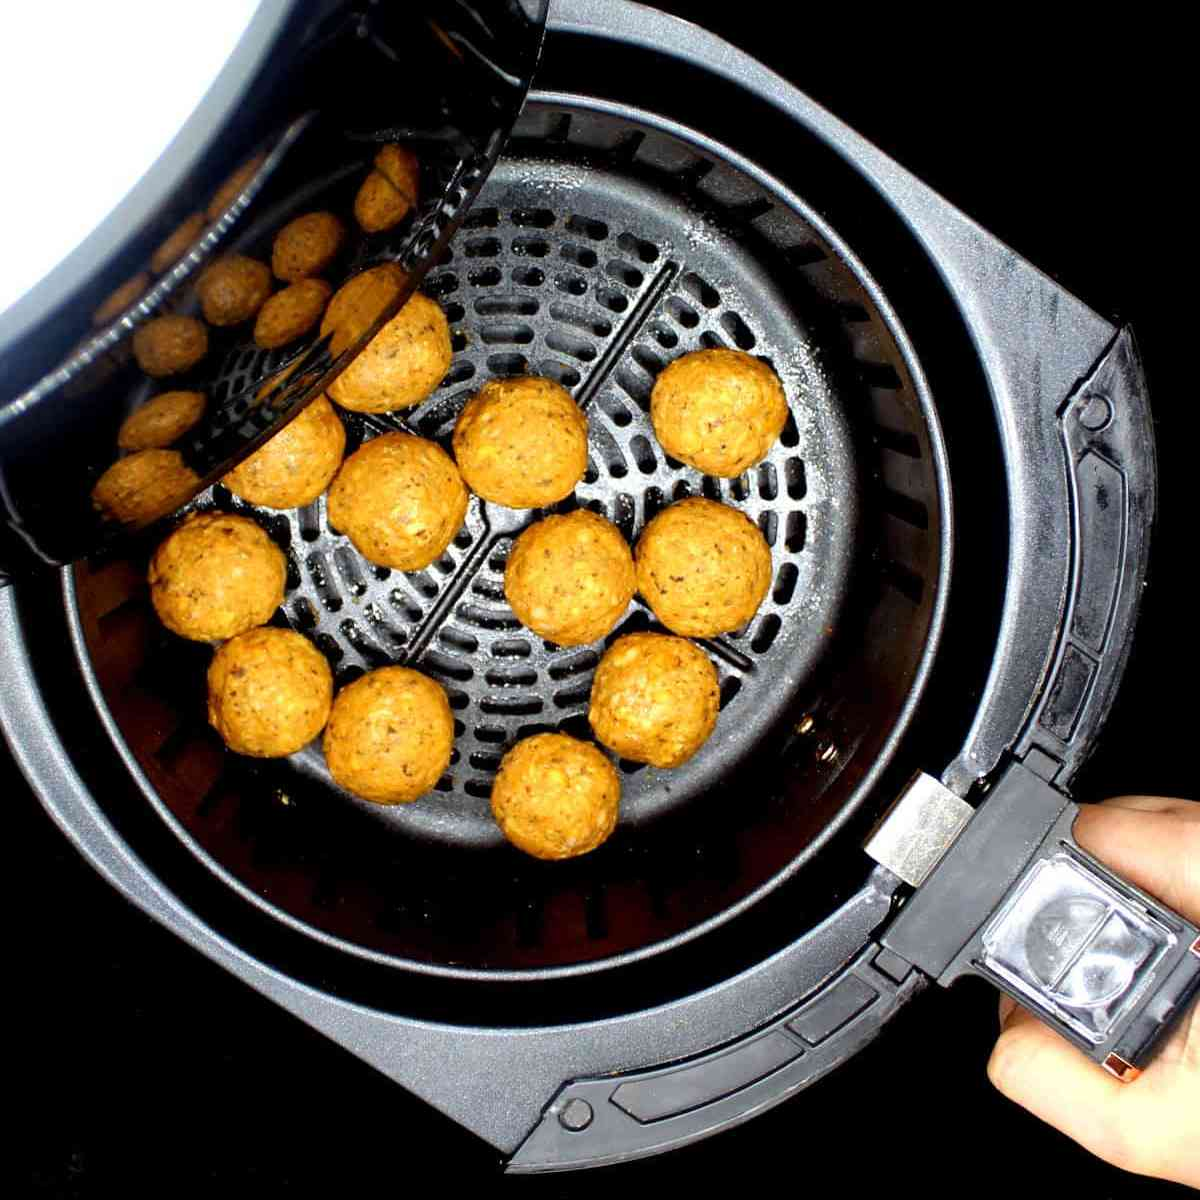 Vegan Air Fryer Meatballs in the air fryer basket